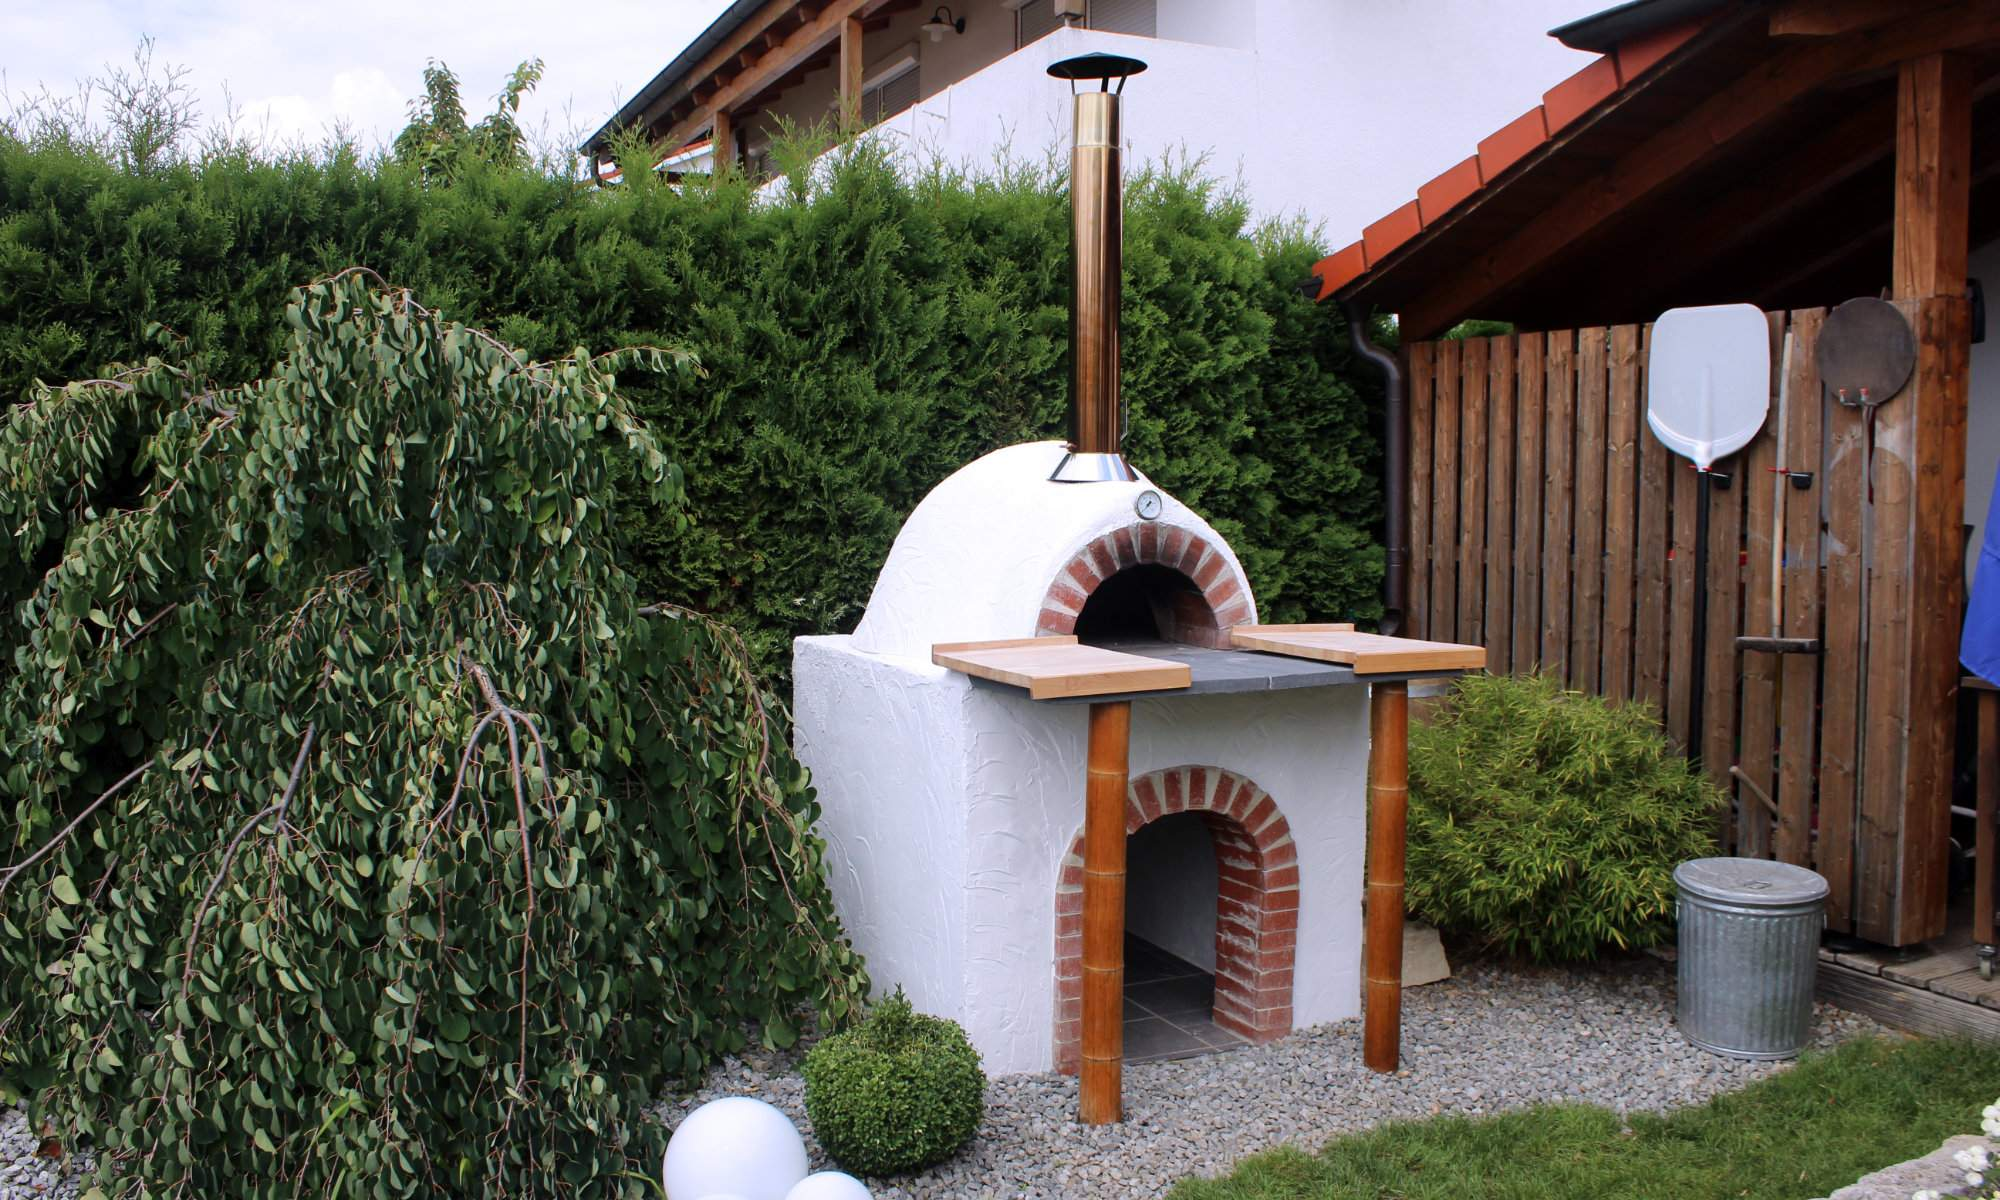 pizzaofenrhager